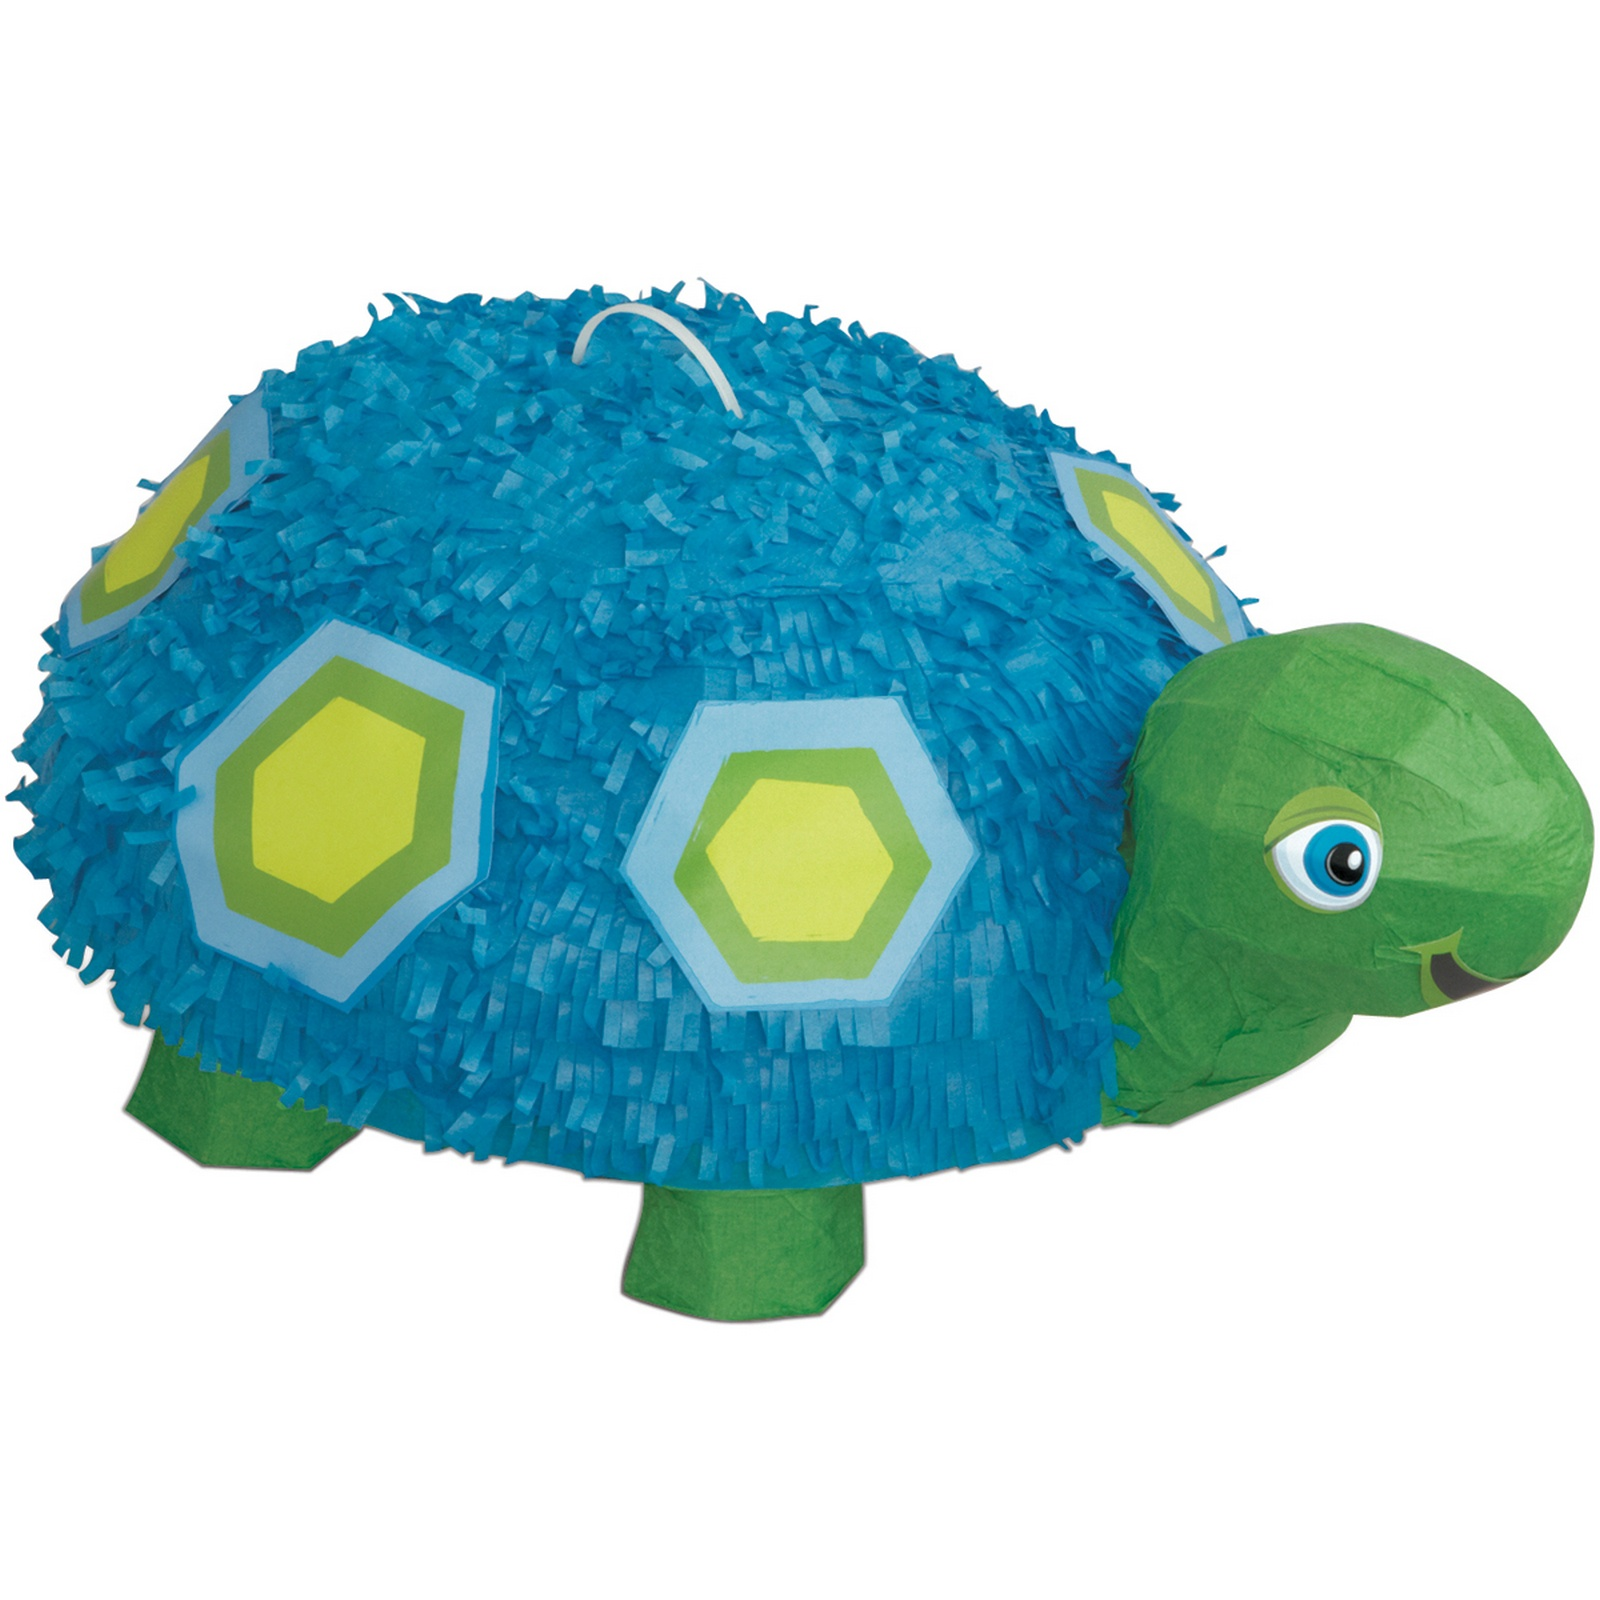 BLUE TURTLE 3D PINATA